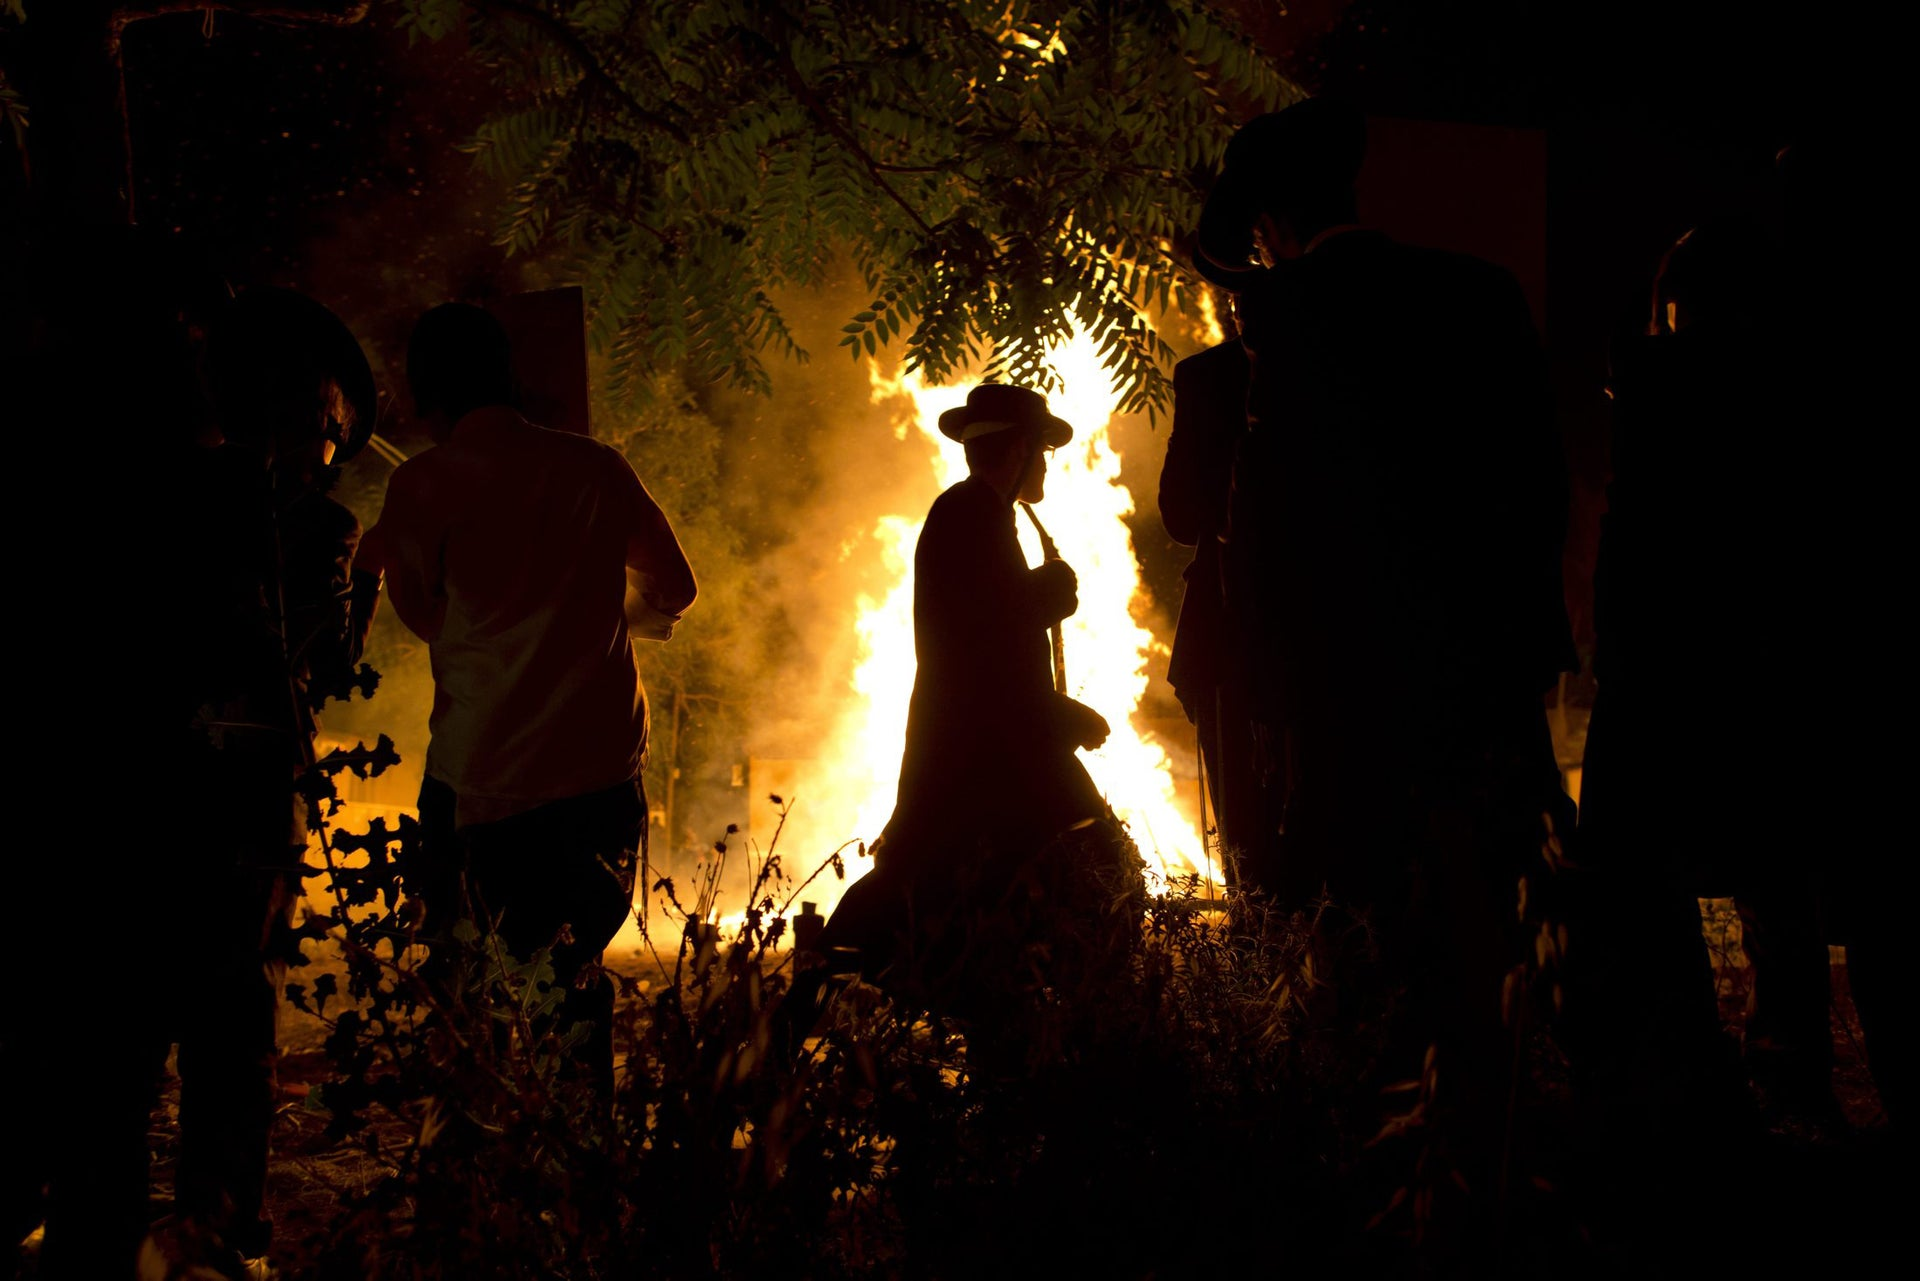 Ultra-Orthodox Jews stand around a bonfire during the Jewish holiday of Lag Ba'Omer celebration in Jerusalem, Wednesday, May 25, 2016. The holiday marking the end of a plague said to have decimated Jews during the Roman times.